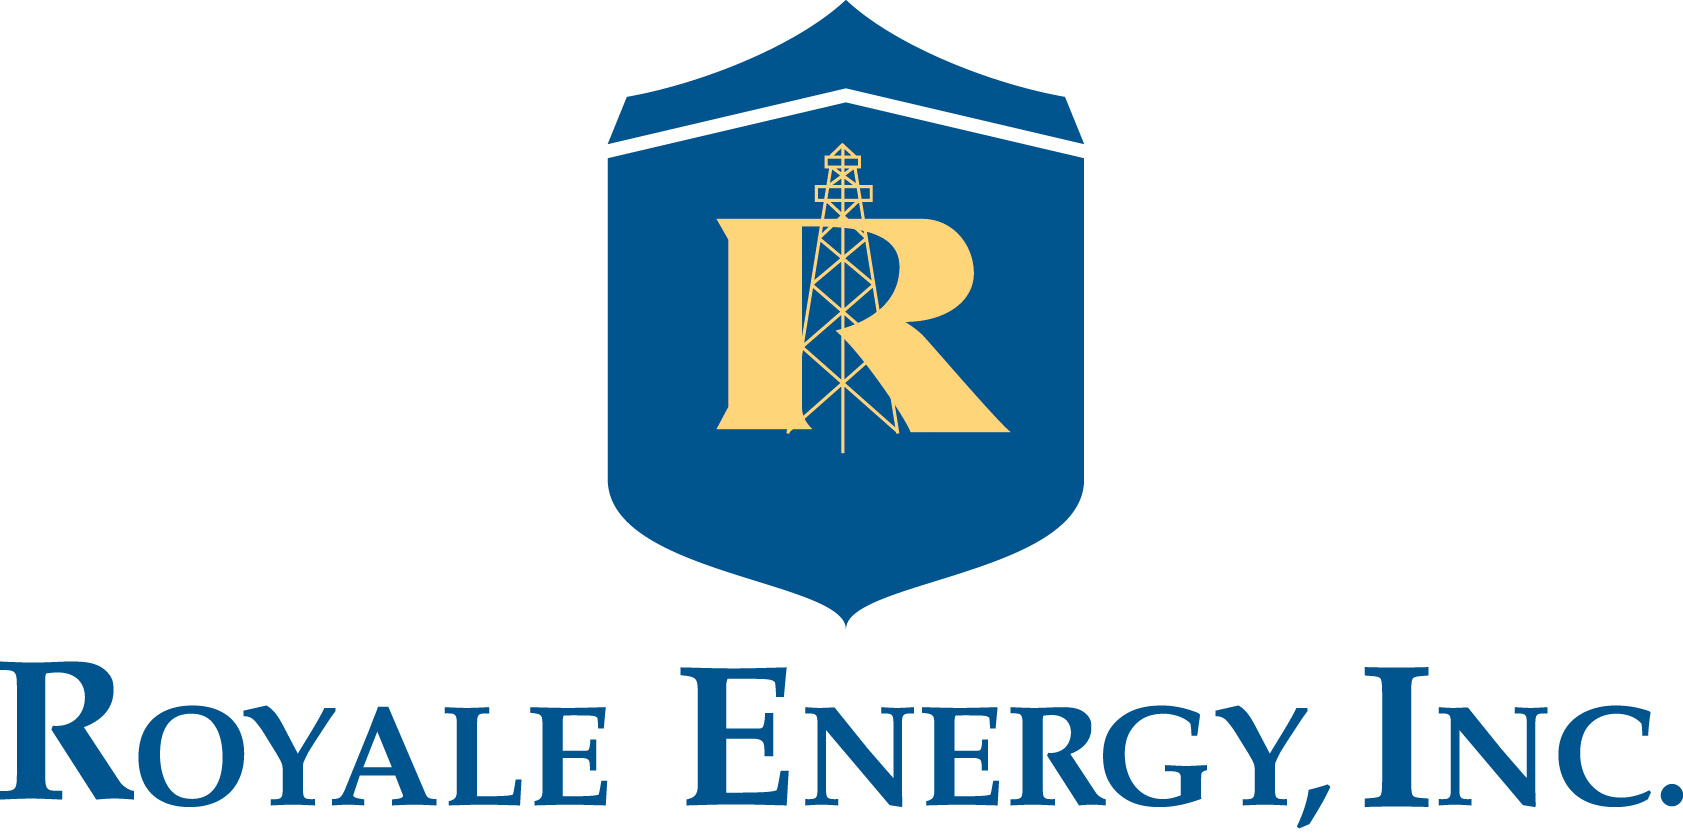 Royale Today Announced that it has Completed the Acquisition of the N. Jameson and Big Mineral Creek Properties from West Coast Energy